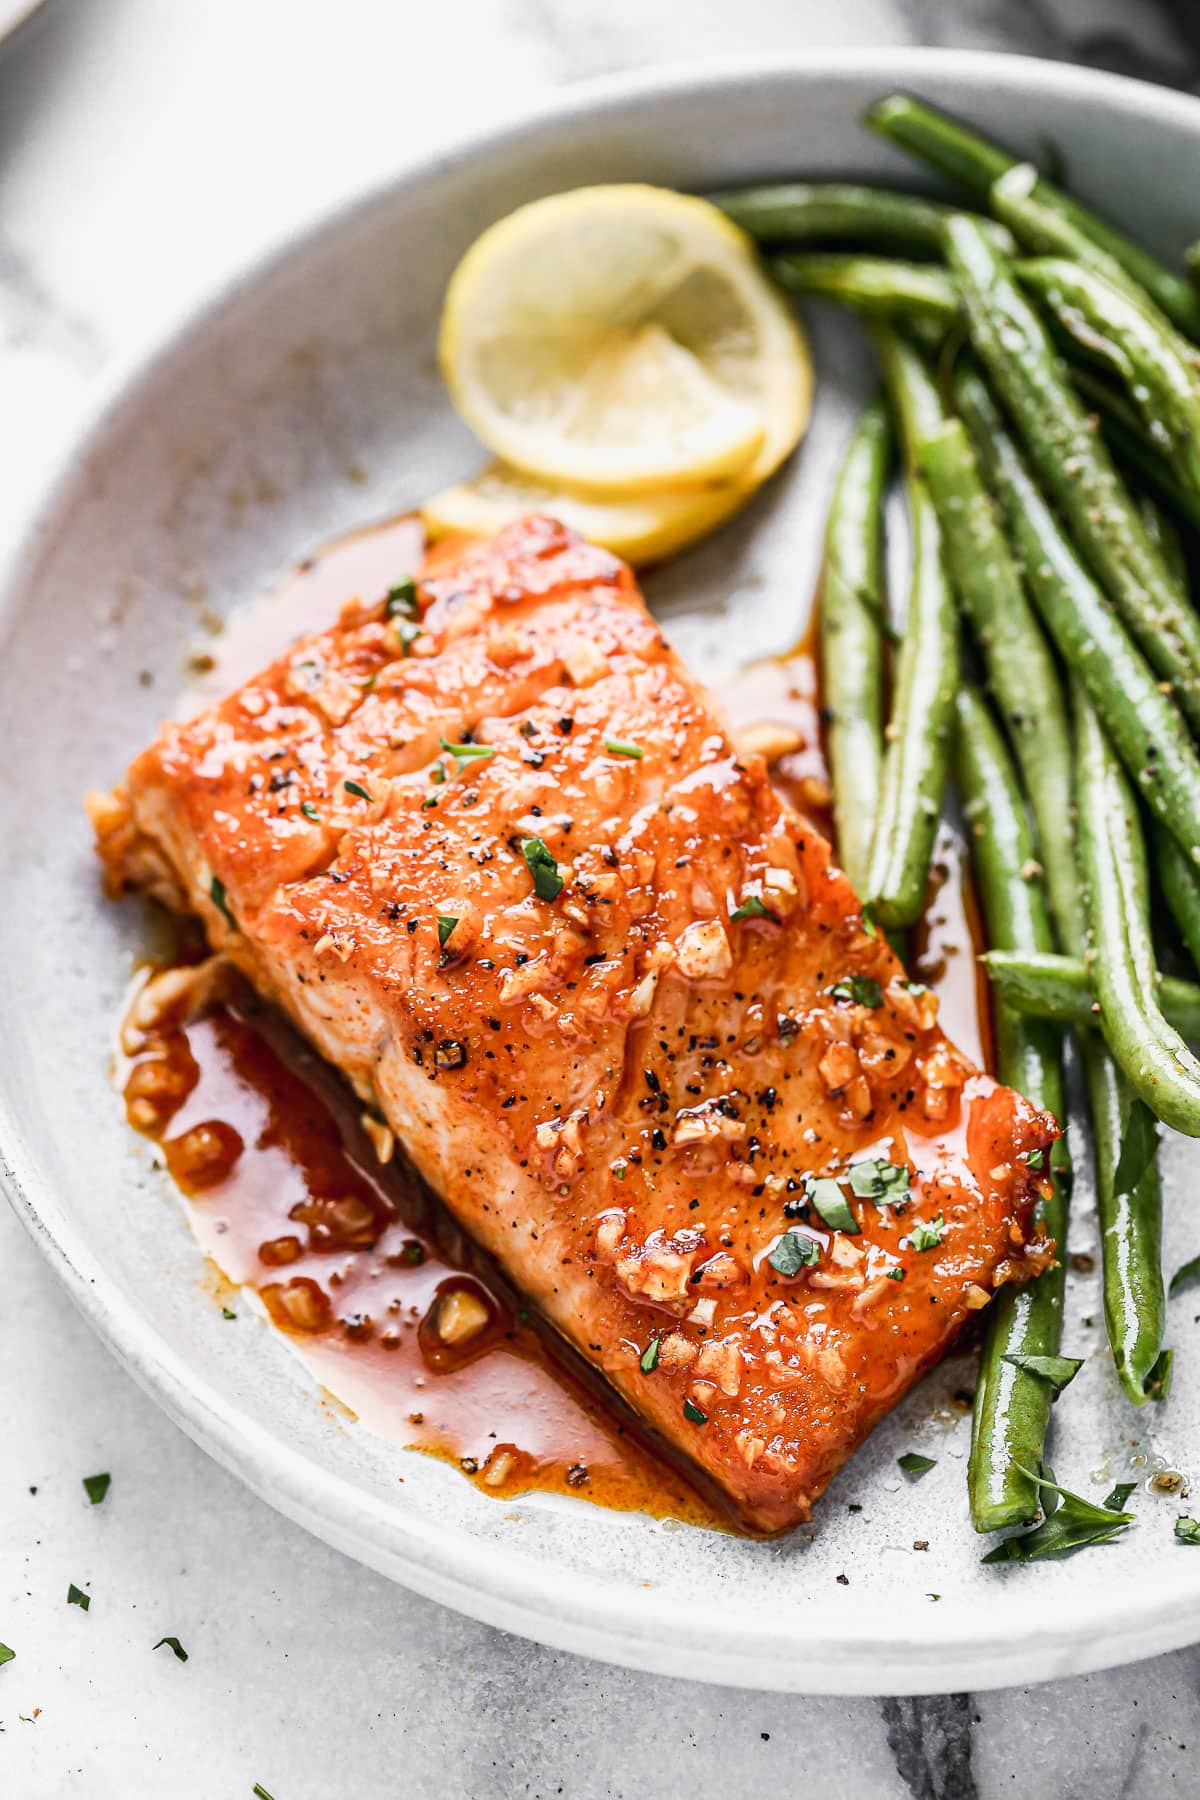 Saucy honey garlic salmon on a plate